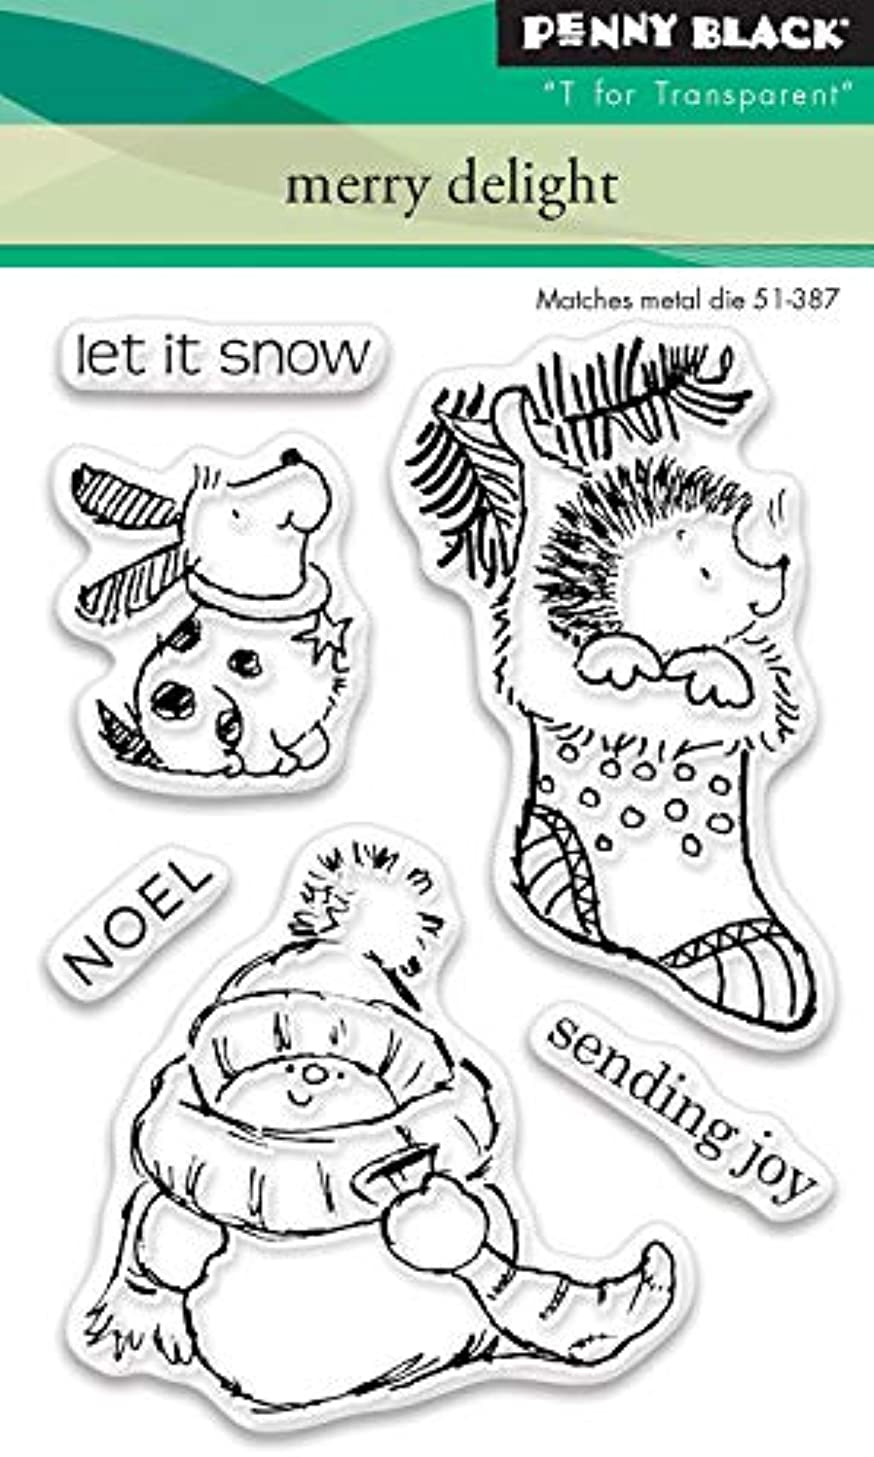 Penny Black Series Clear Stamp Set 30-448 Merry Delight